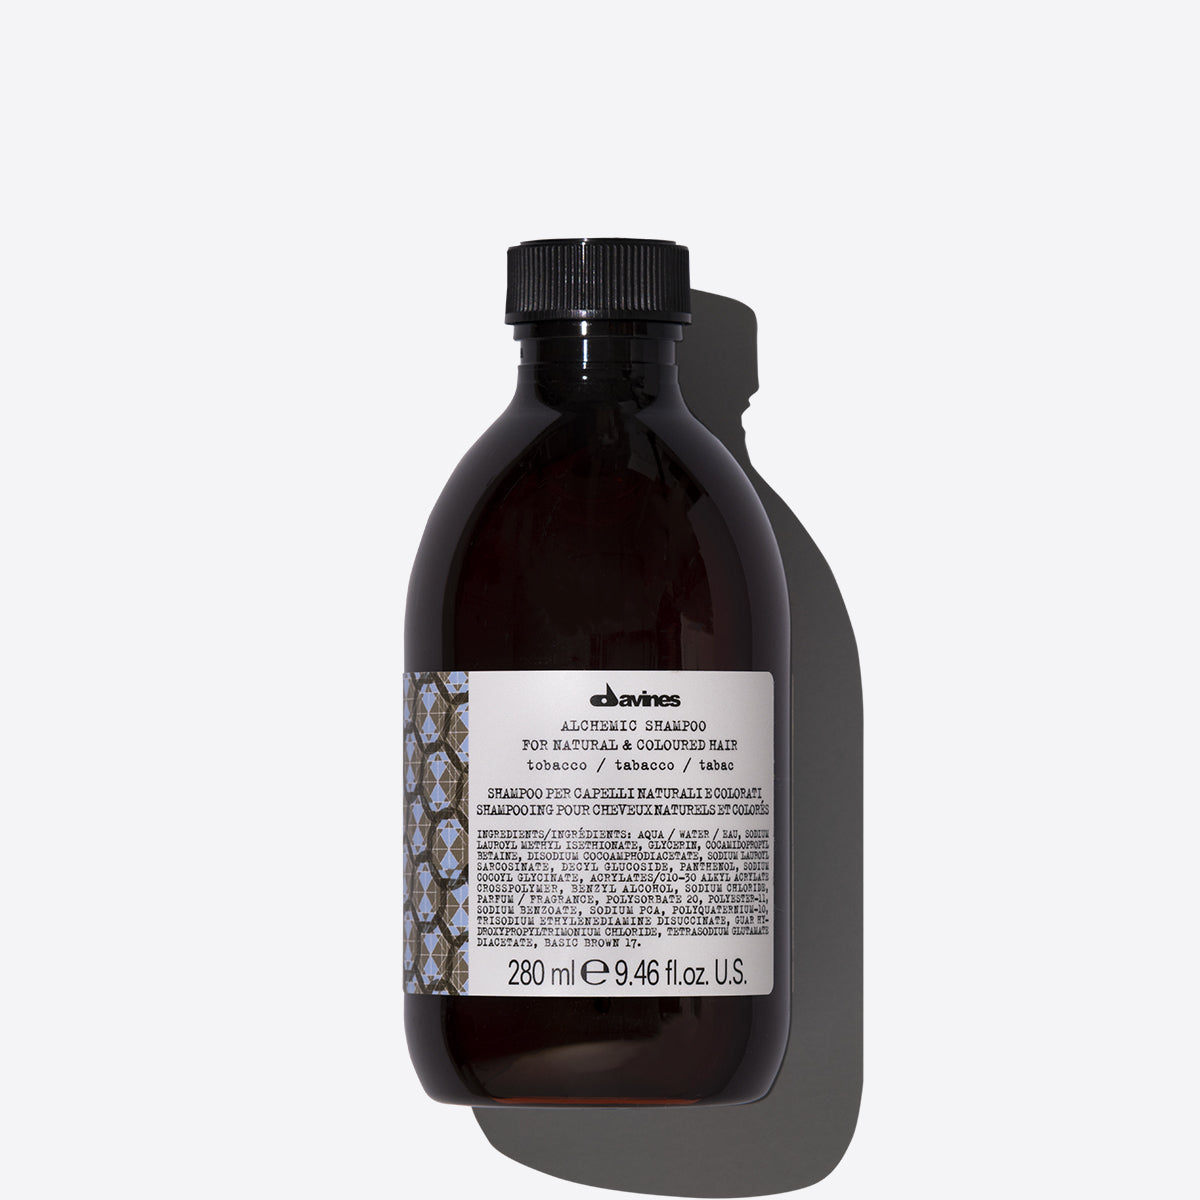 ALCHEMIC Shampoo Tobacco 1  280 ml / 9,47 fl.oz.Davines